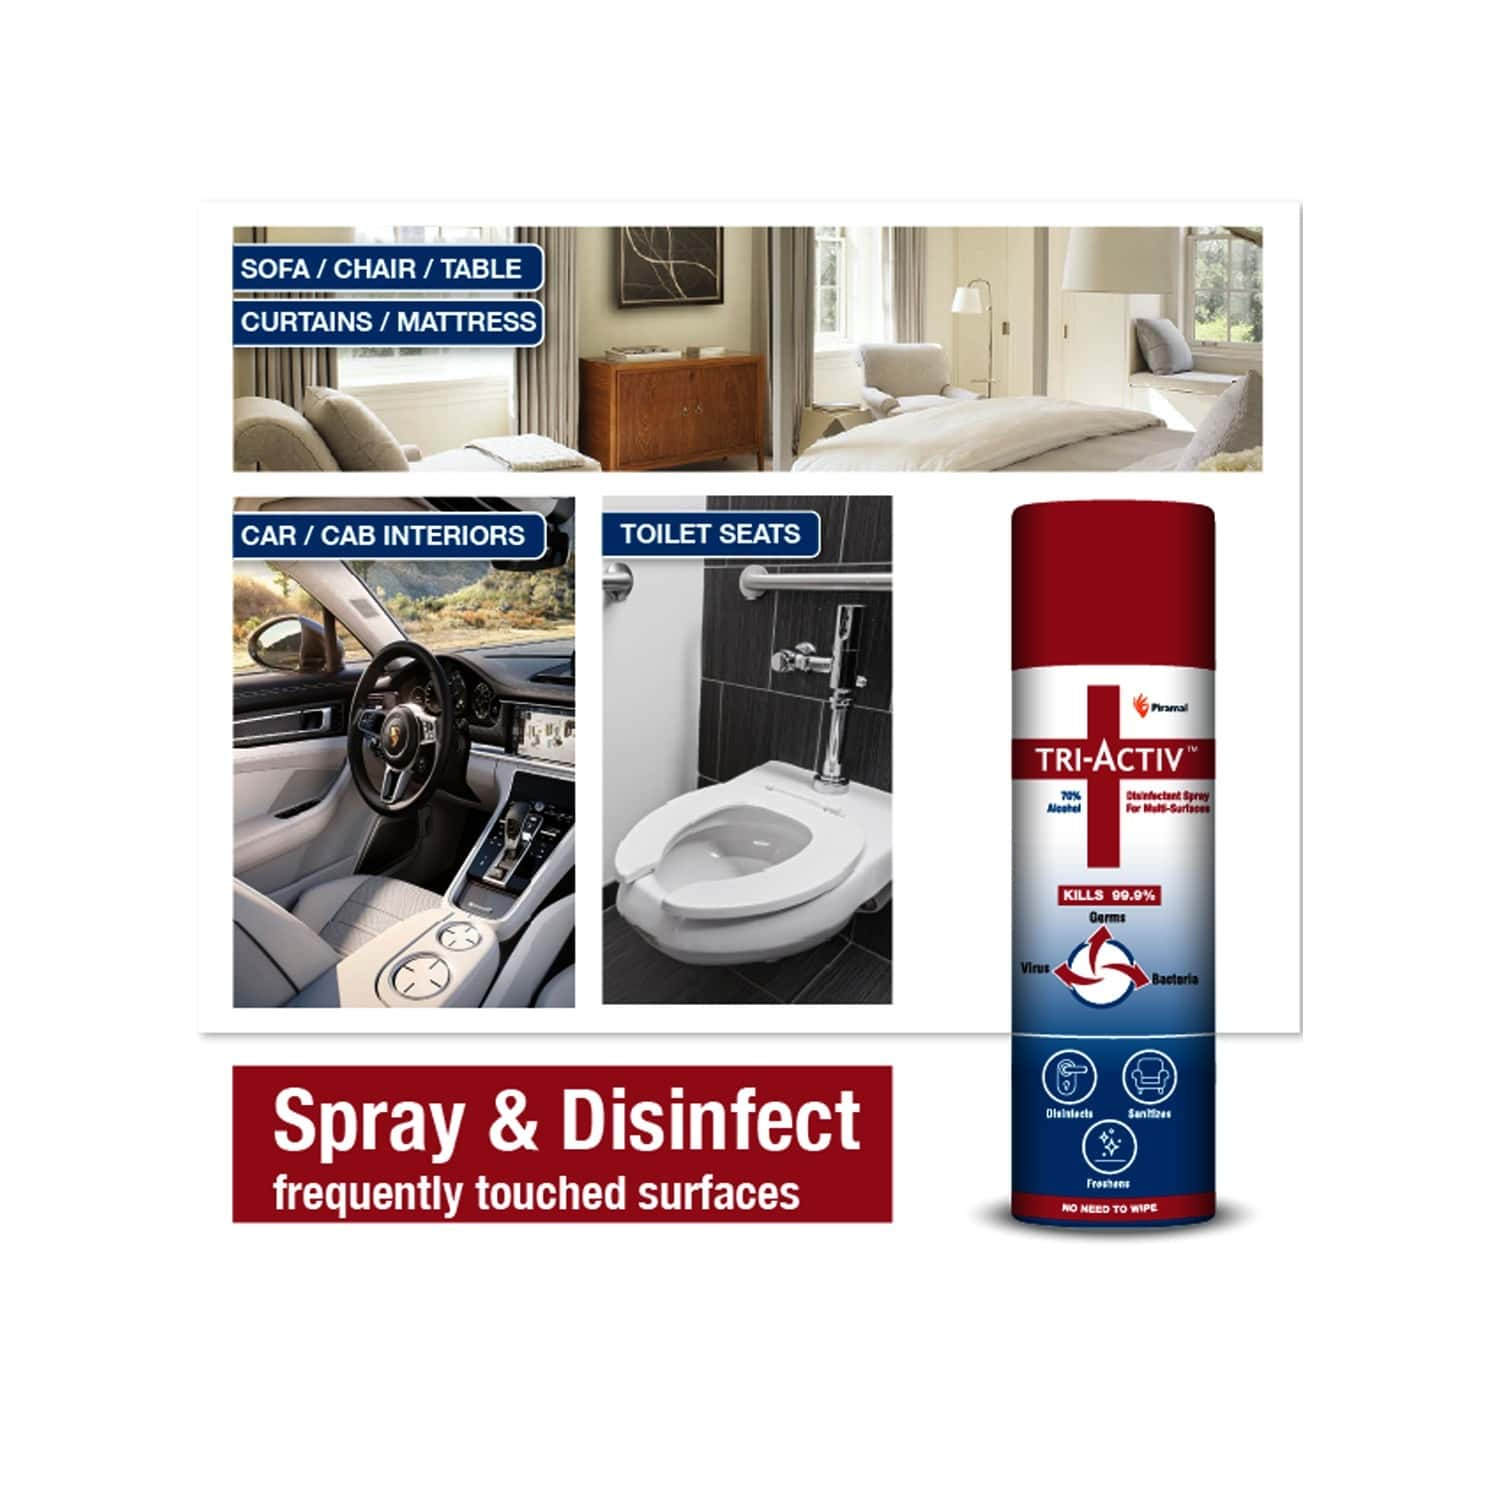 Tri-activ Disinfectant Spray For Multi-surfaces - 70% Alcohol Based - 230ml